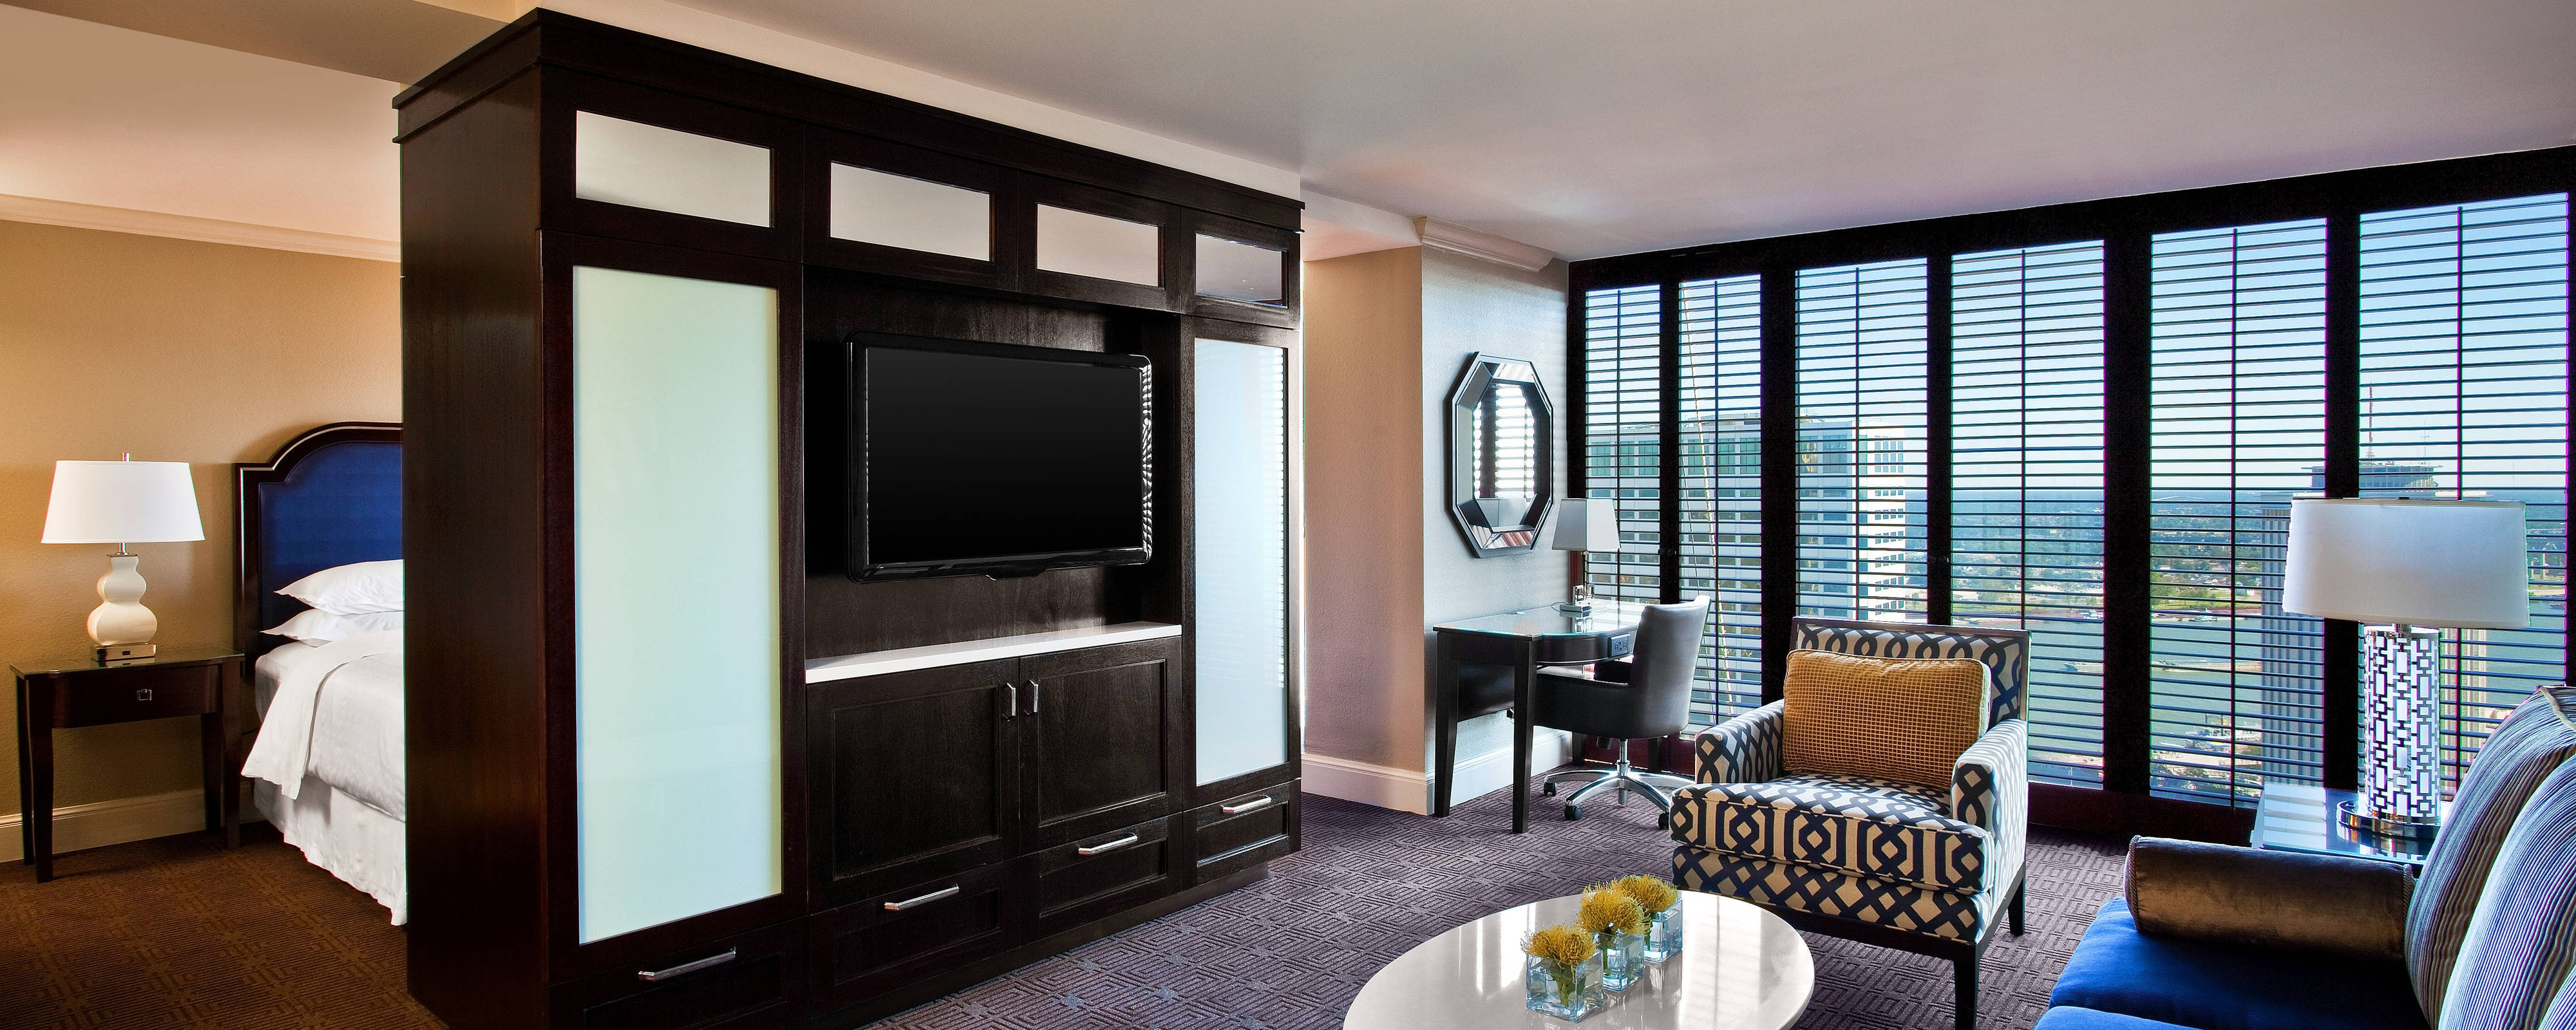 Executive Suite - Parlor